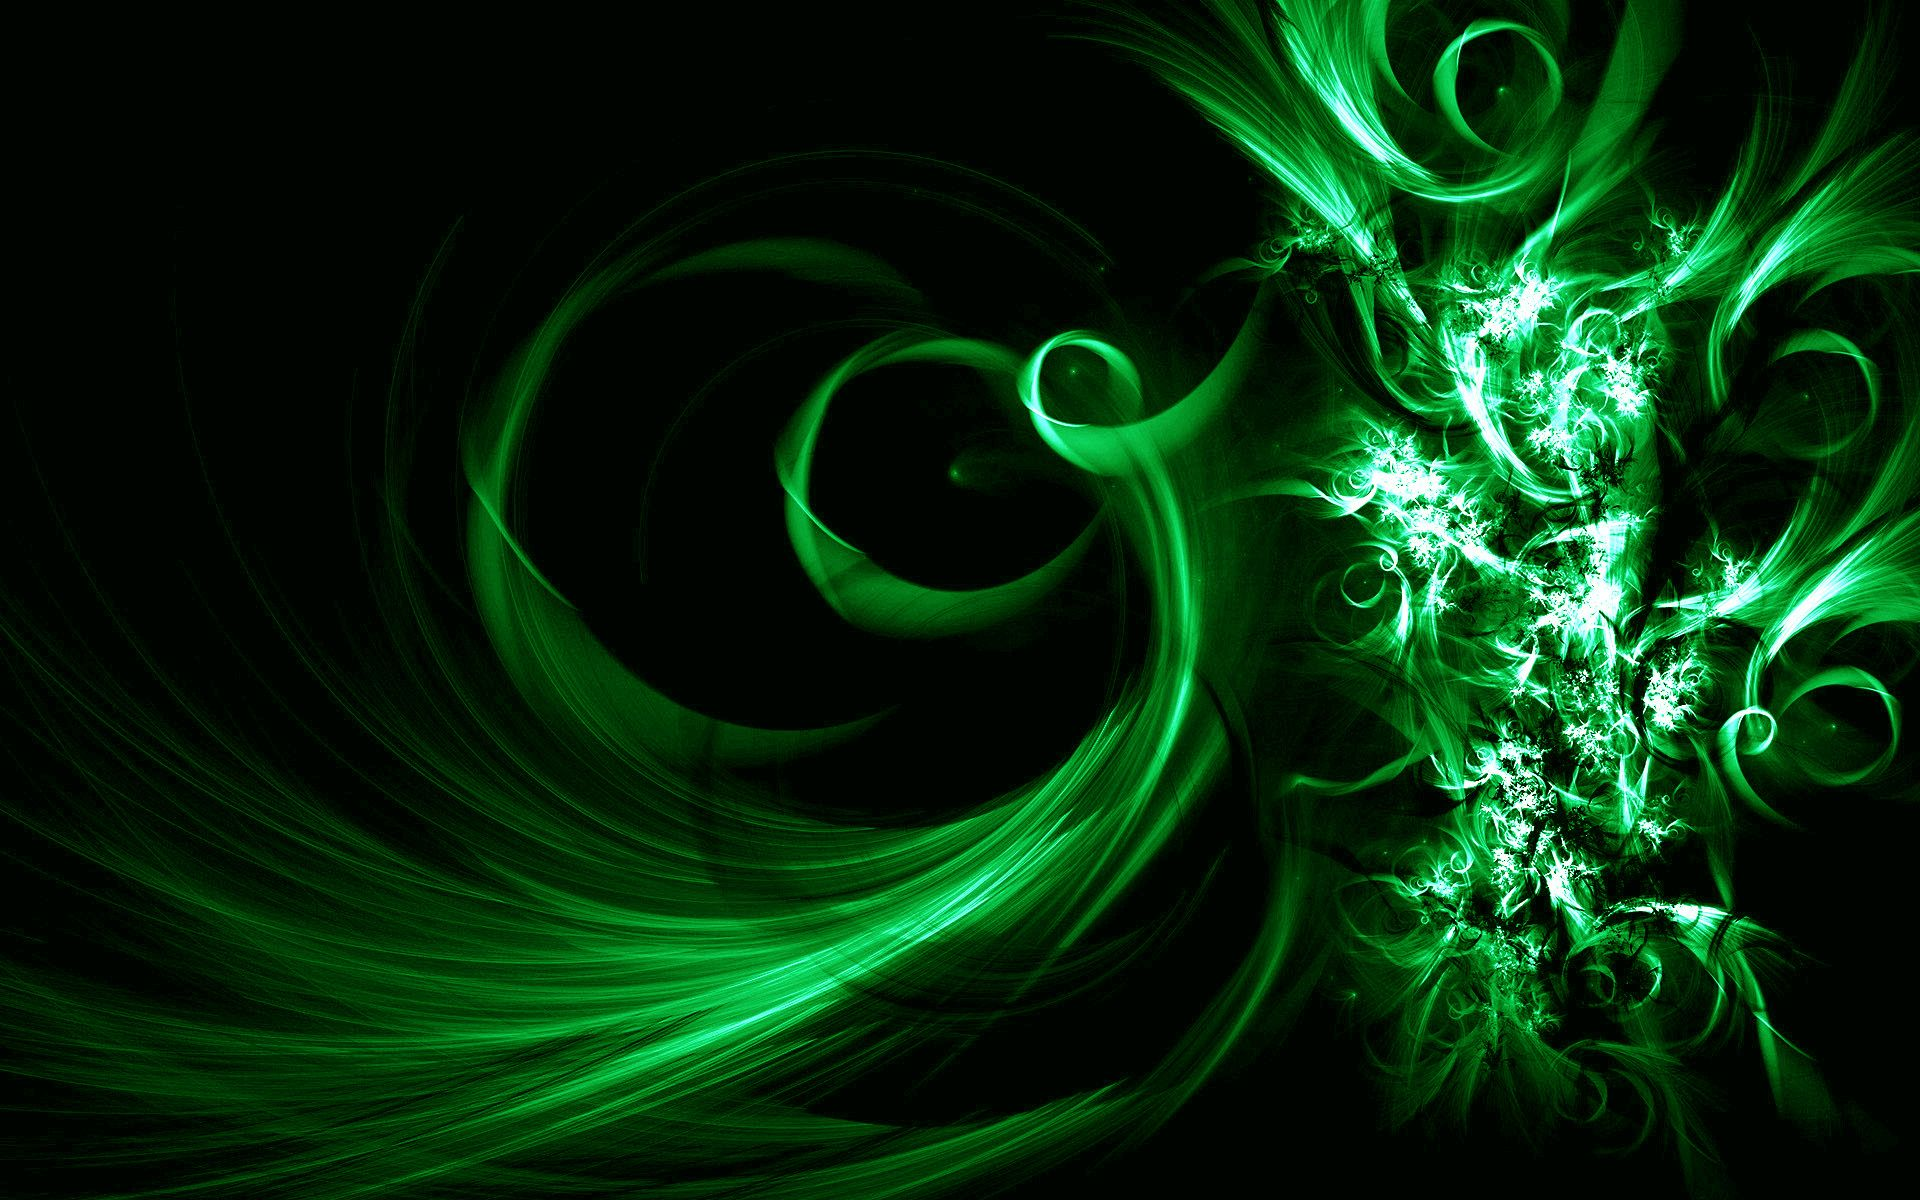 Image Description: This Is Black And Green Vector Abstract